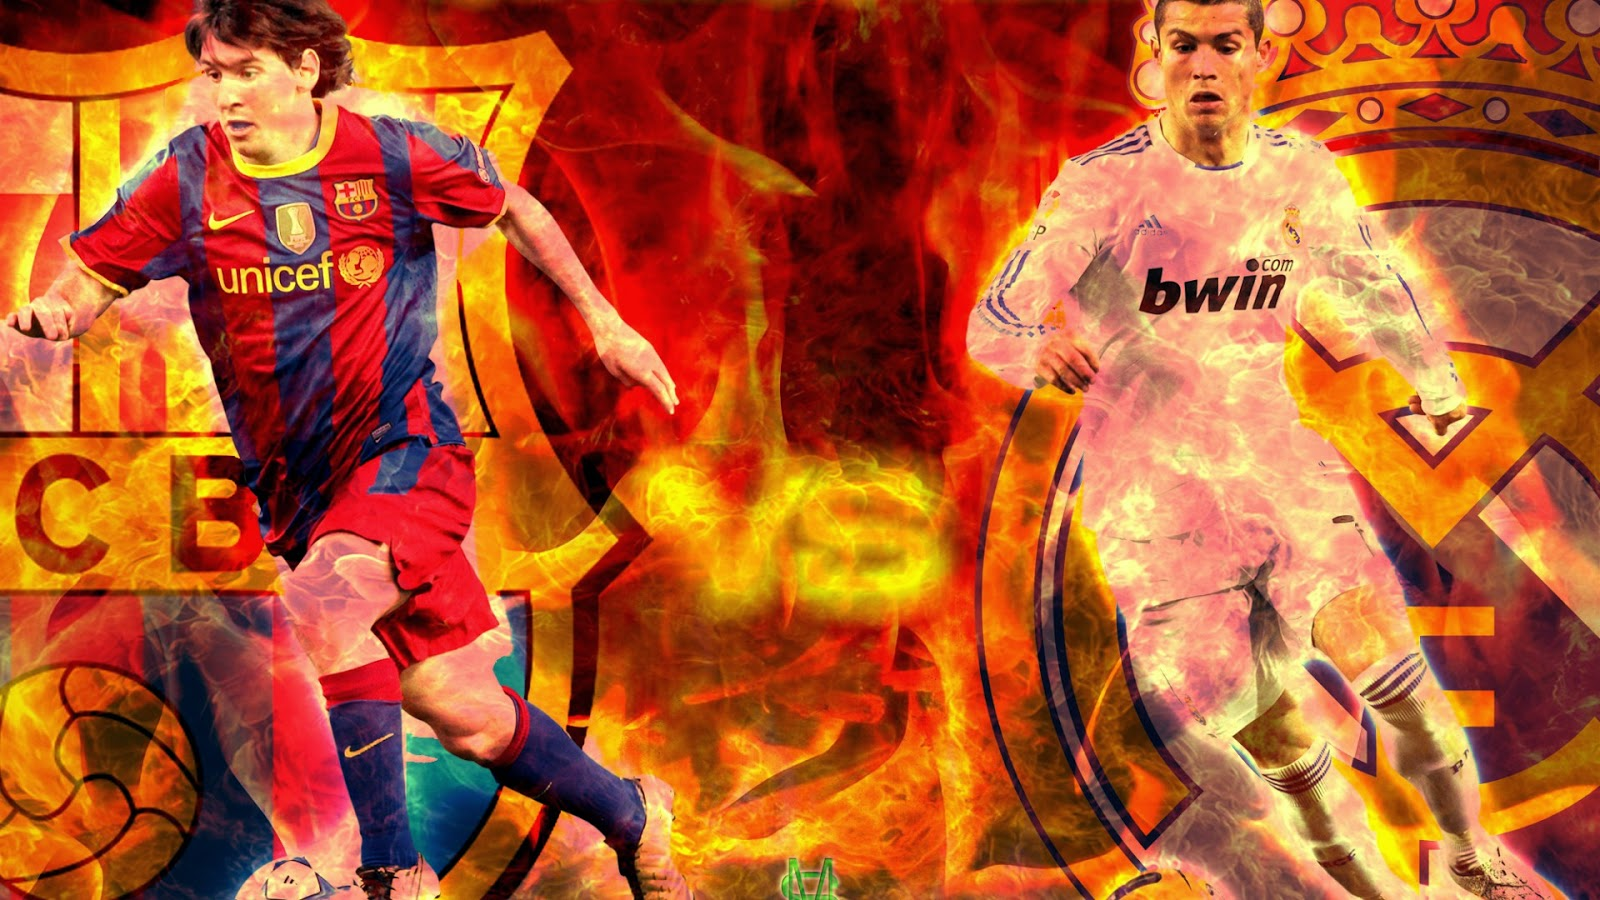 Wallpapers Cristiano Ronaldo Vs Lionel Messi HD Wallpapers 2014 1600x900